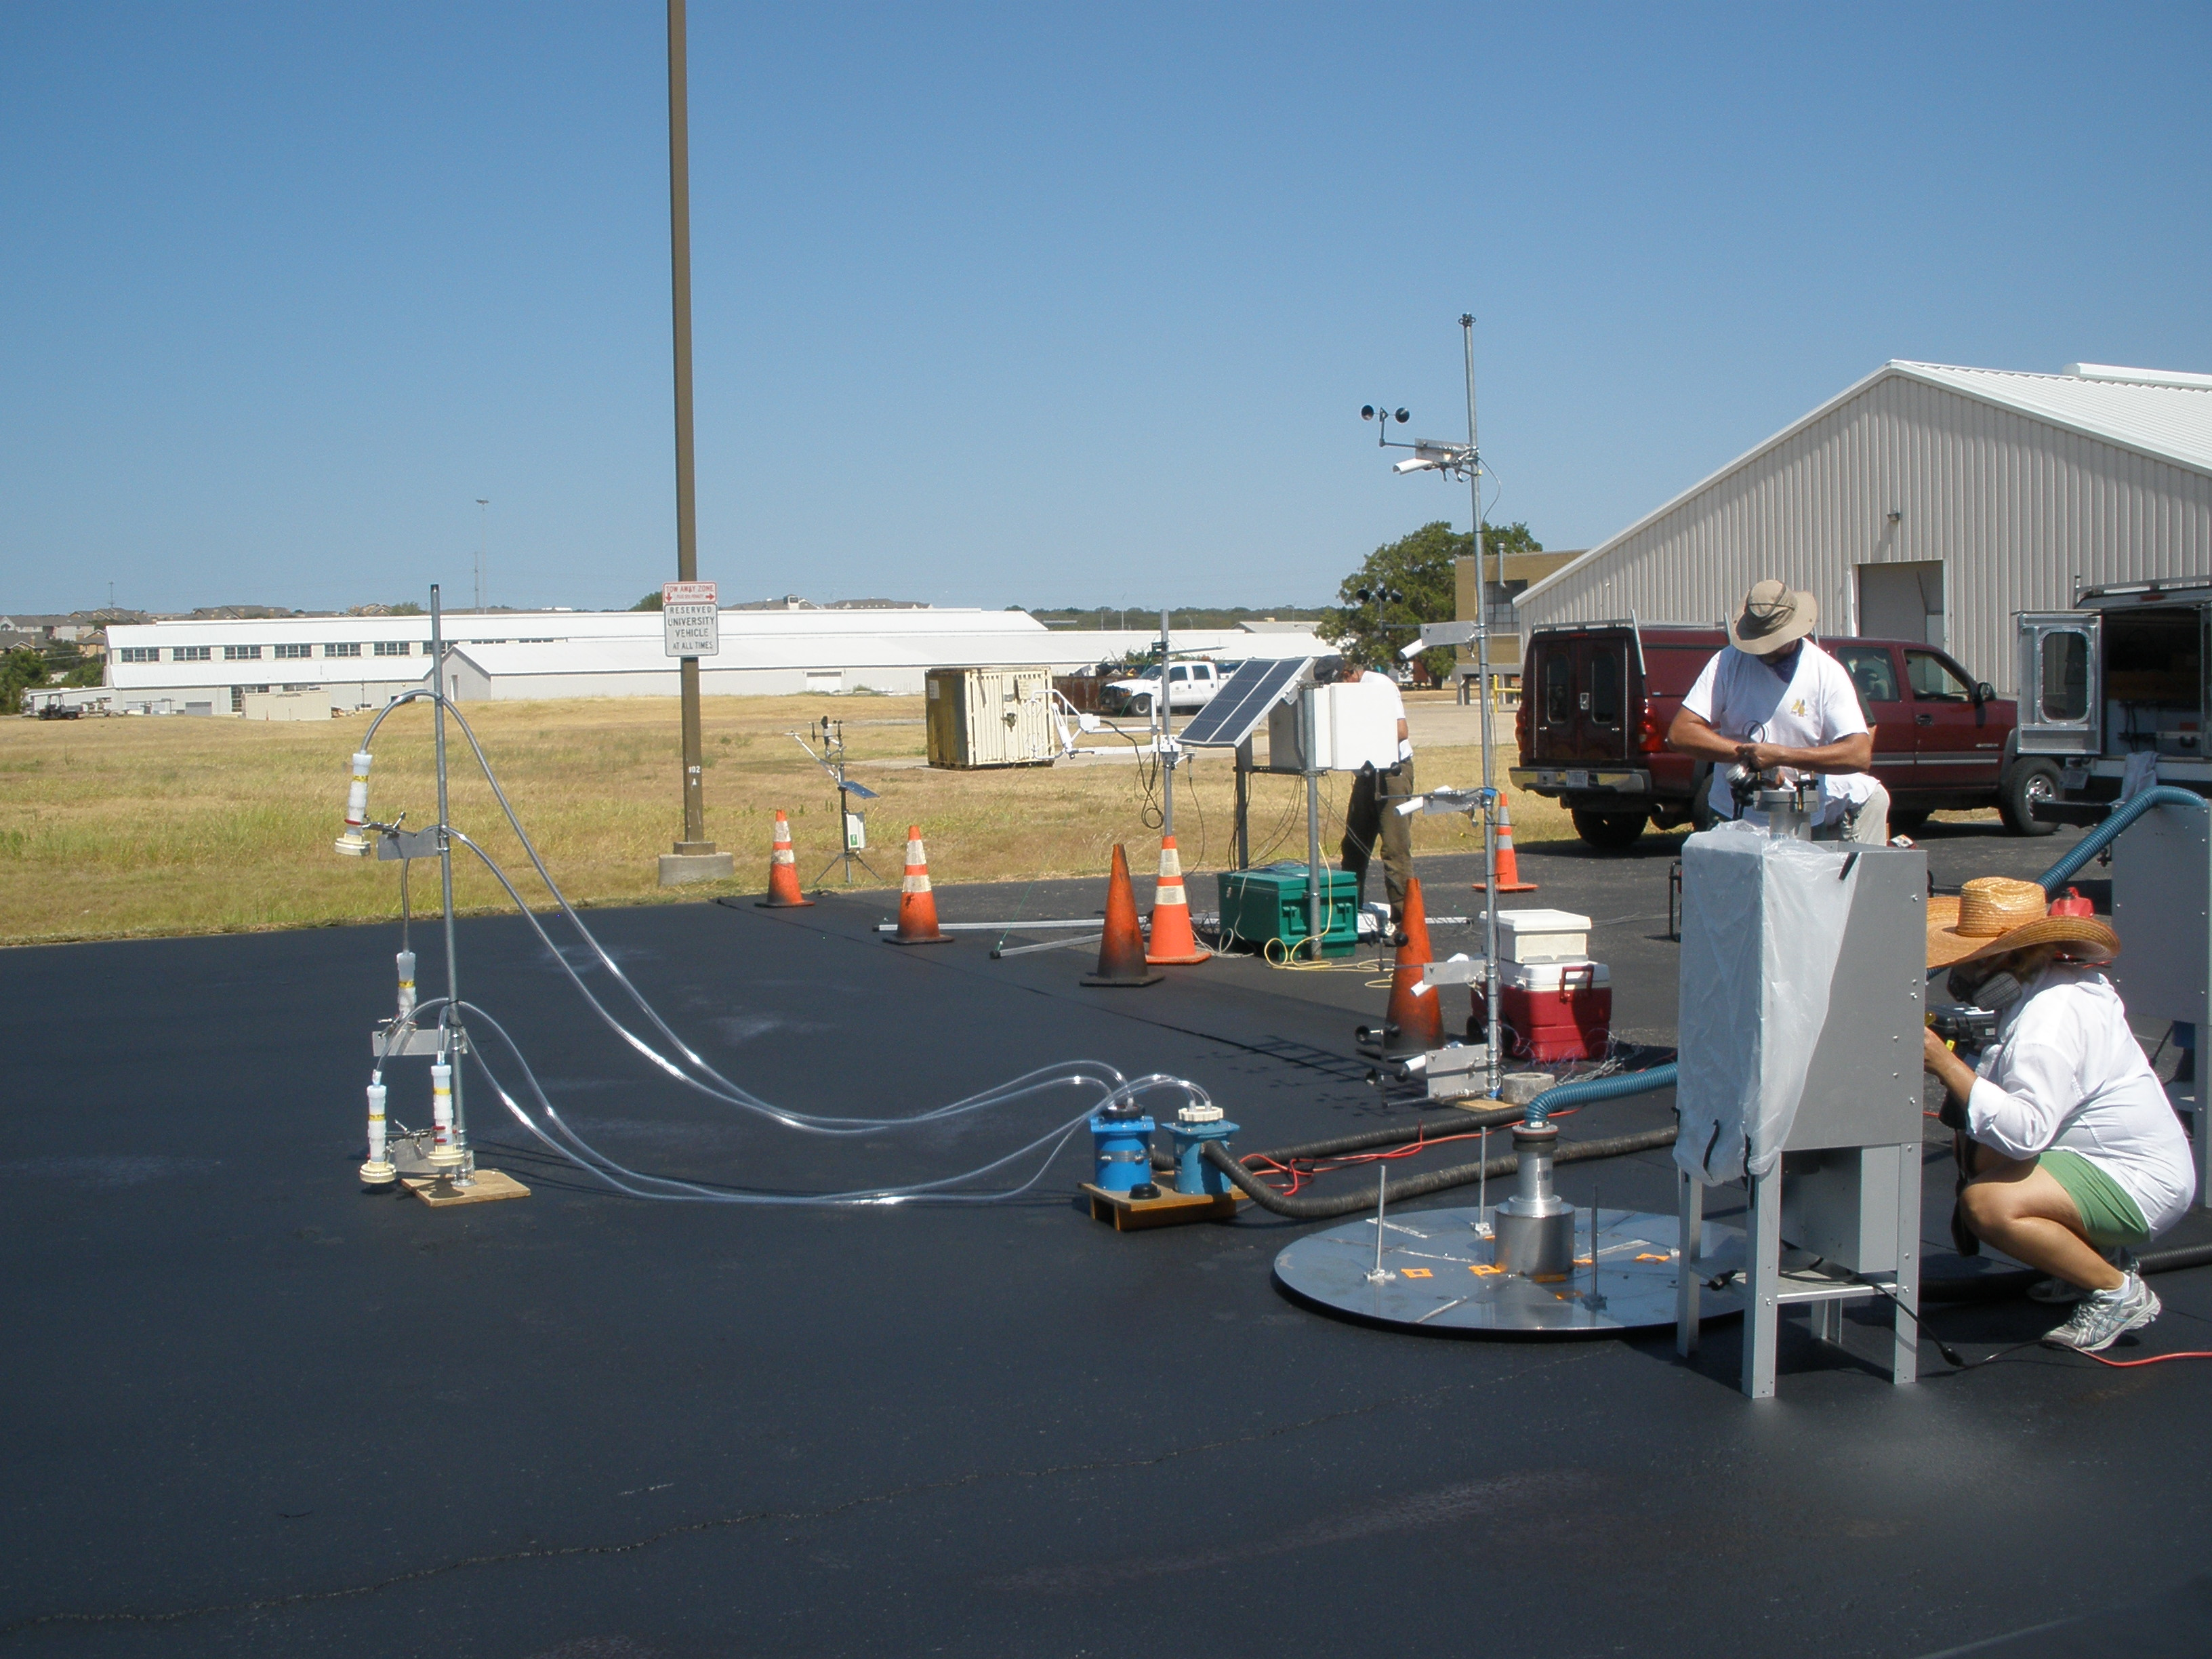 Researchers studying air quality and toxicity of runoff in a parking lot sealed with coal-tar. Credit: Barbara Mahler, USGS Research Hydrologist